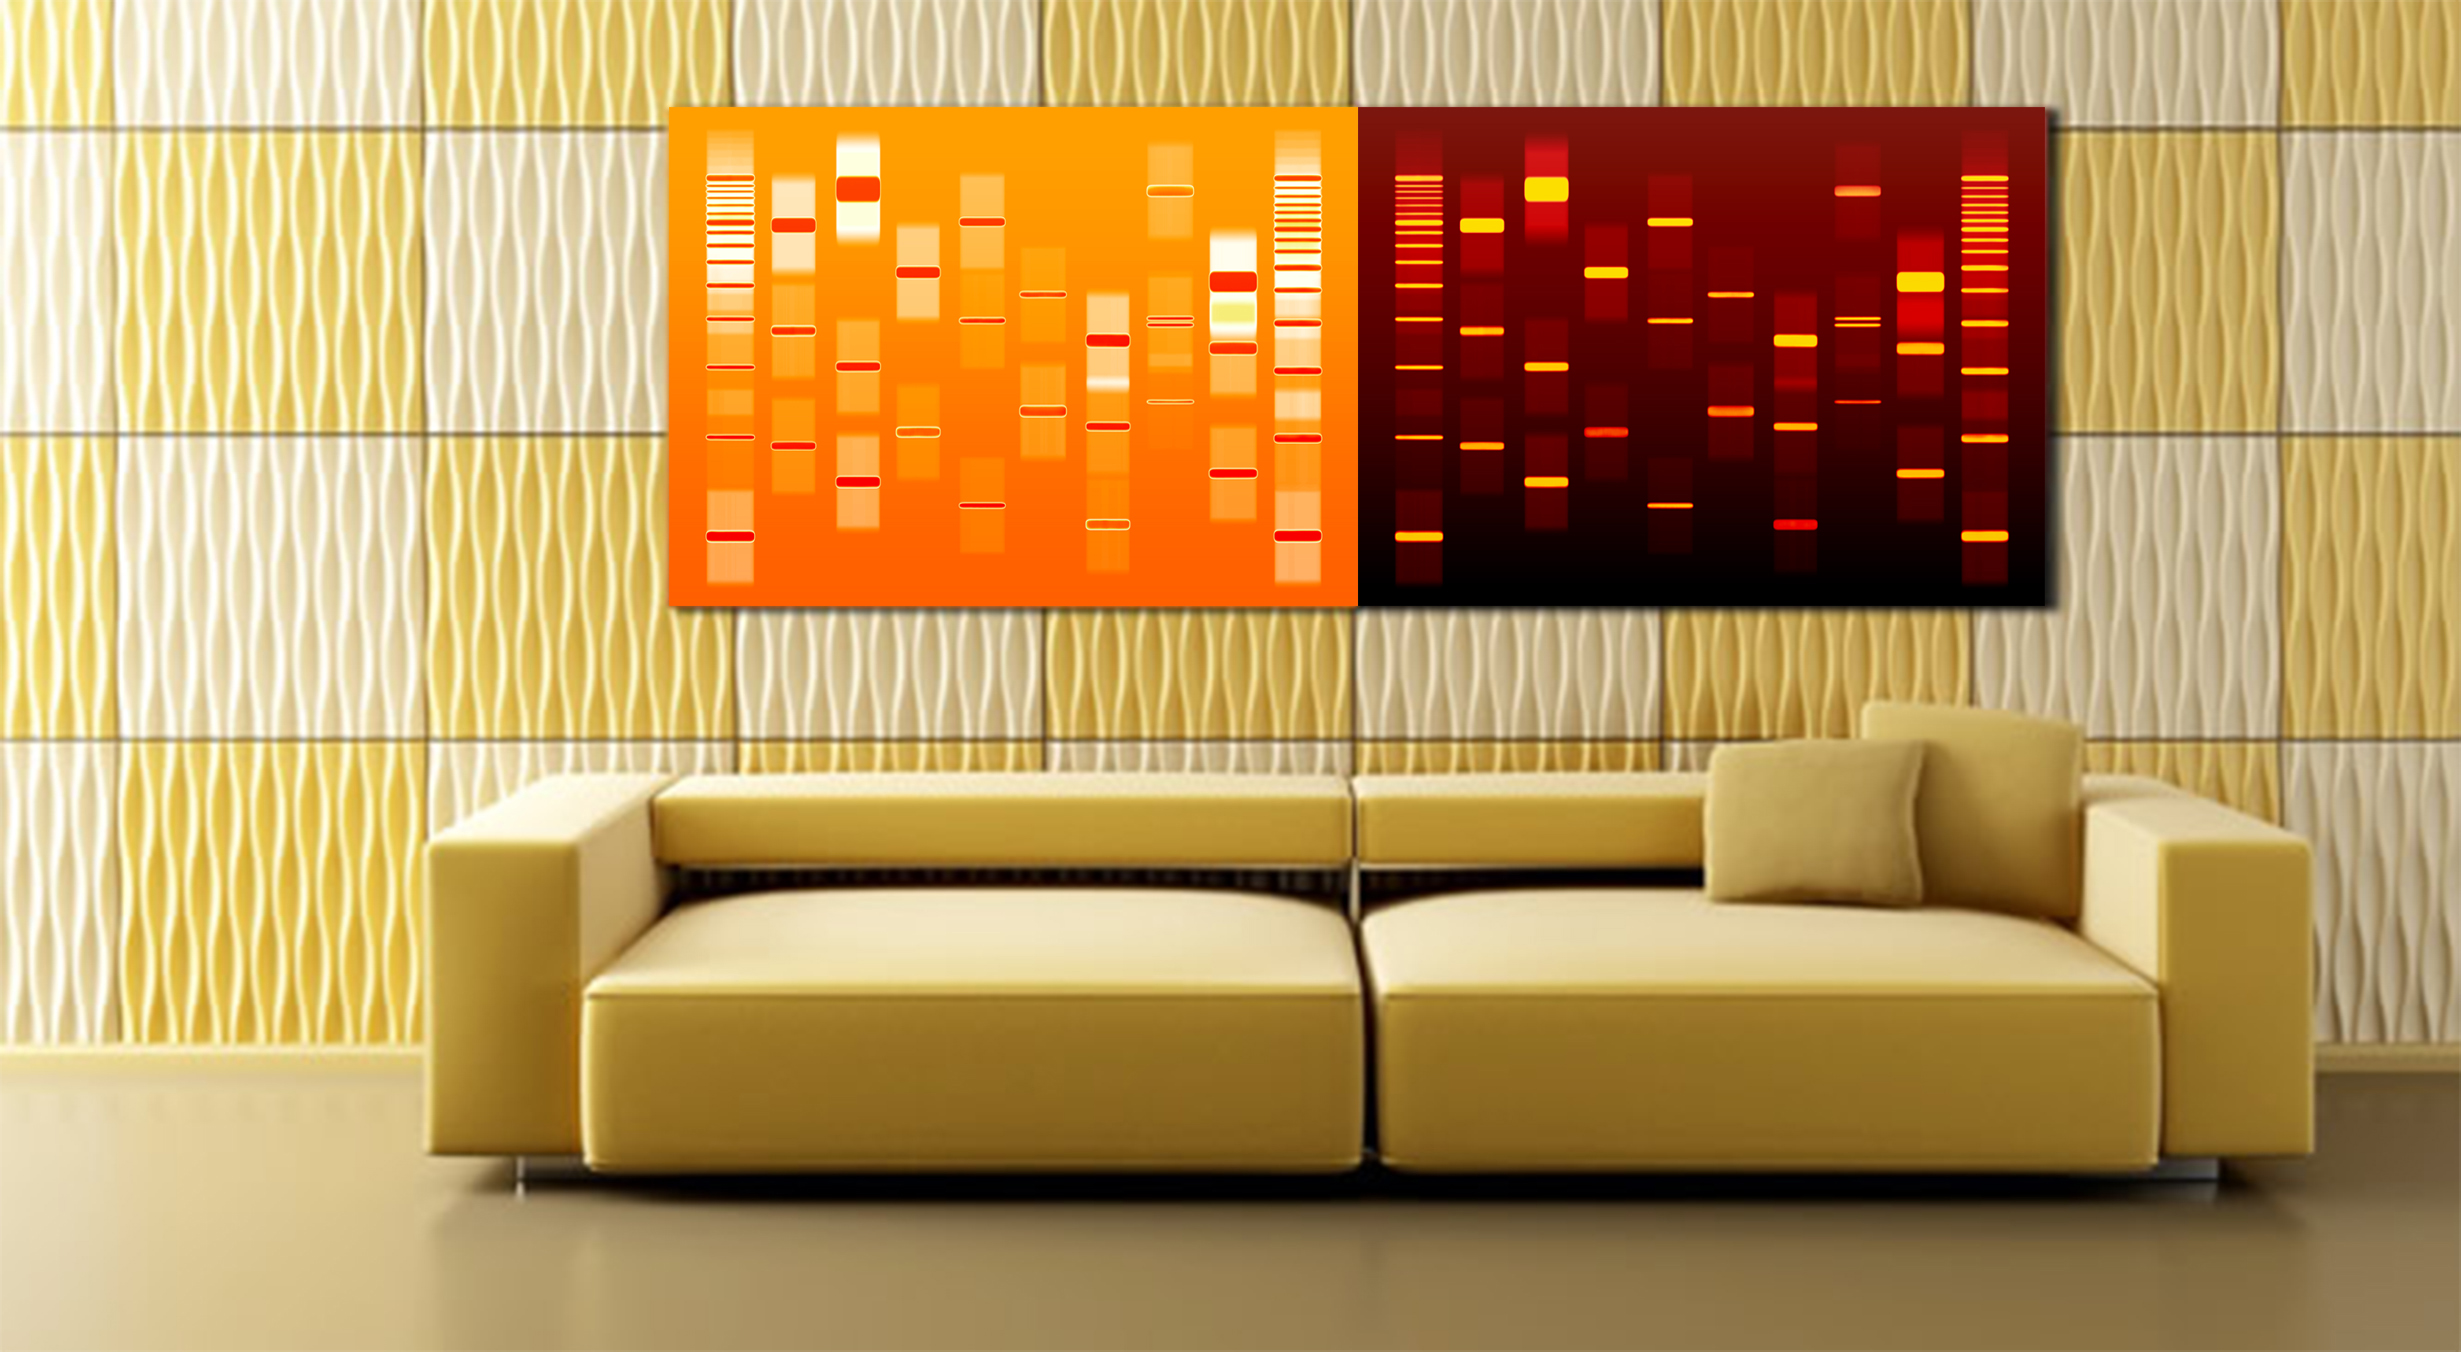 Fantastic Dna Wall Art Collection - Art & Wall Decor - hecatalog.info